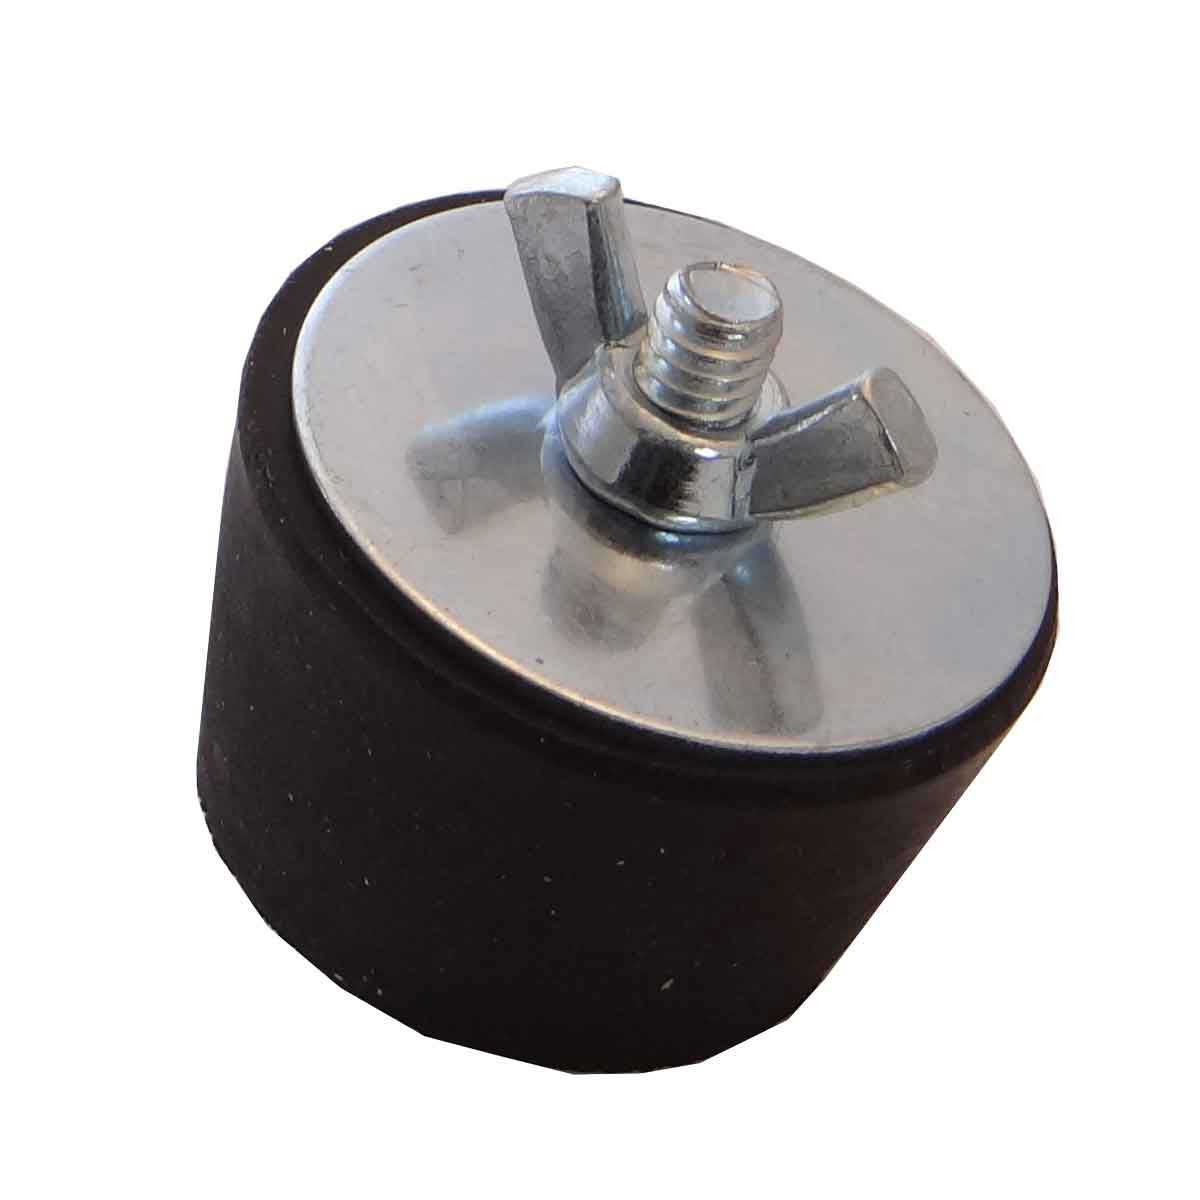 Expanding Rubber Drain Plug for Tile Saw Water Pans